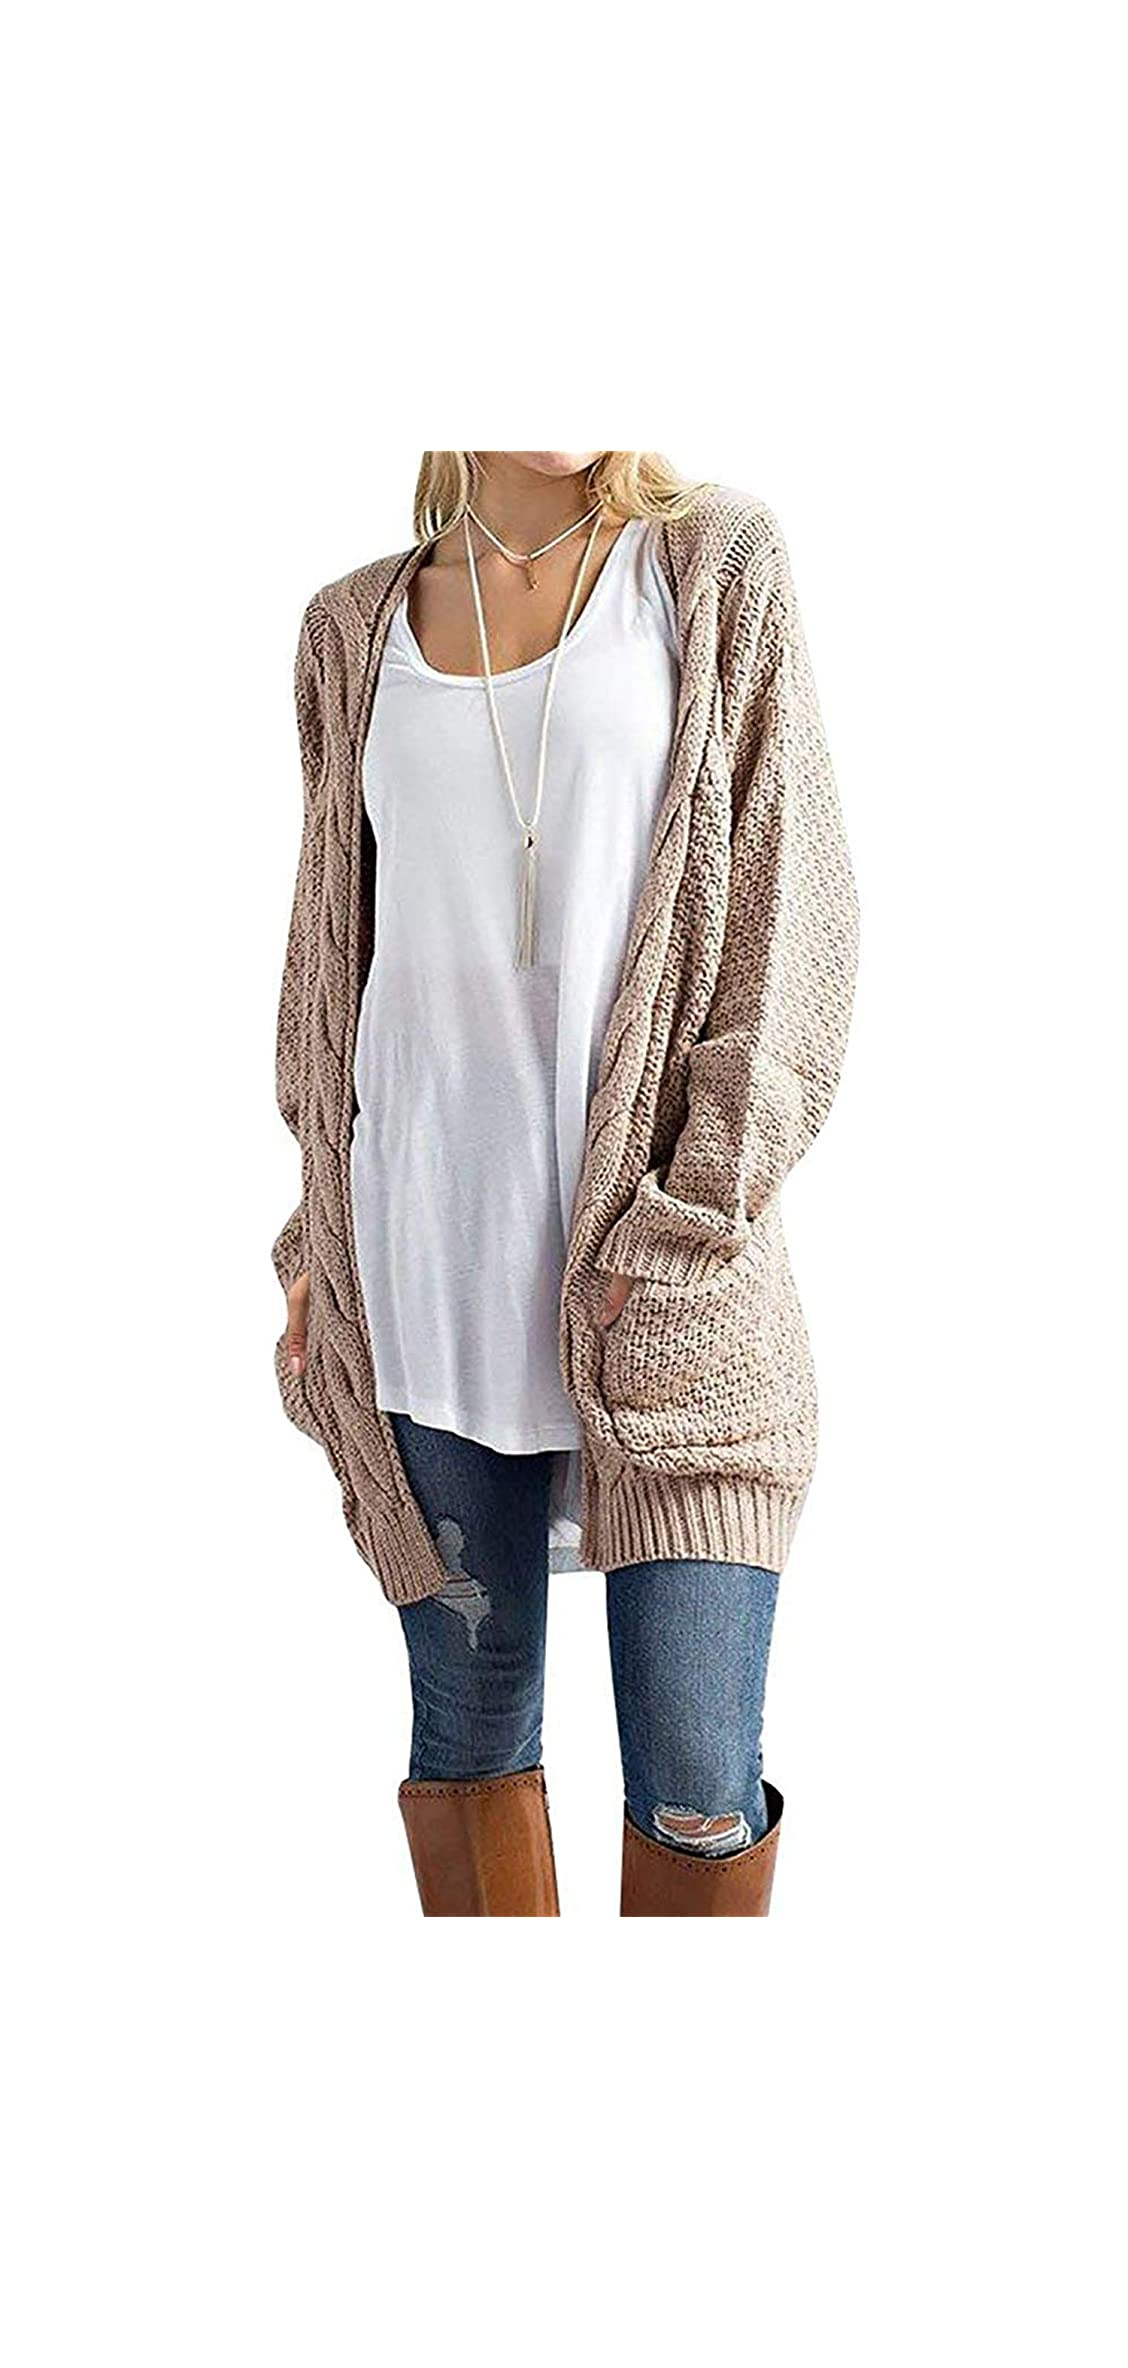 Women's Loose Open Front Long Sleeve Solid Color Knit Cardigans